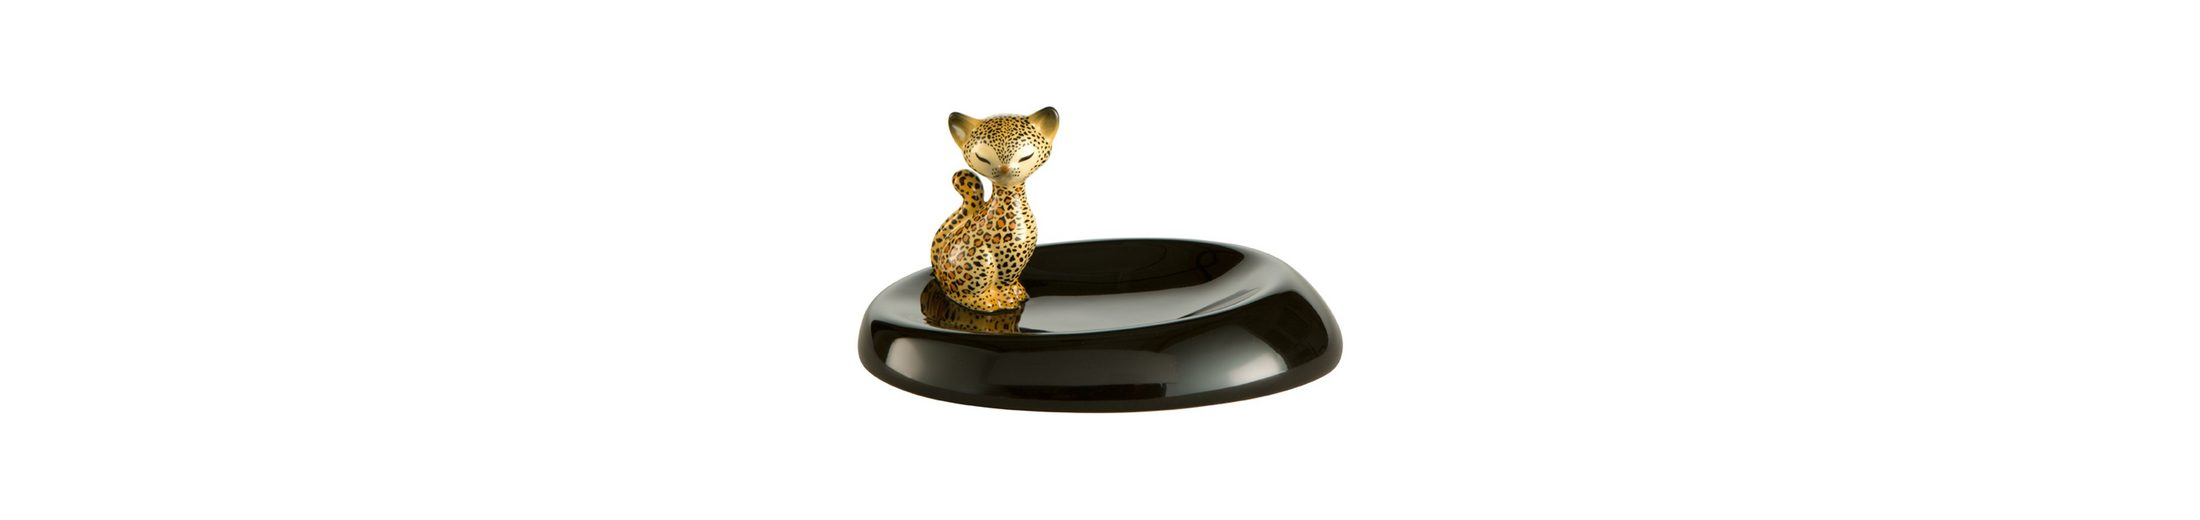 Goebel Leopard Kitty - Schale »Kitty de luxe«